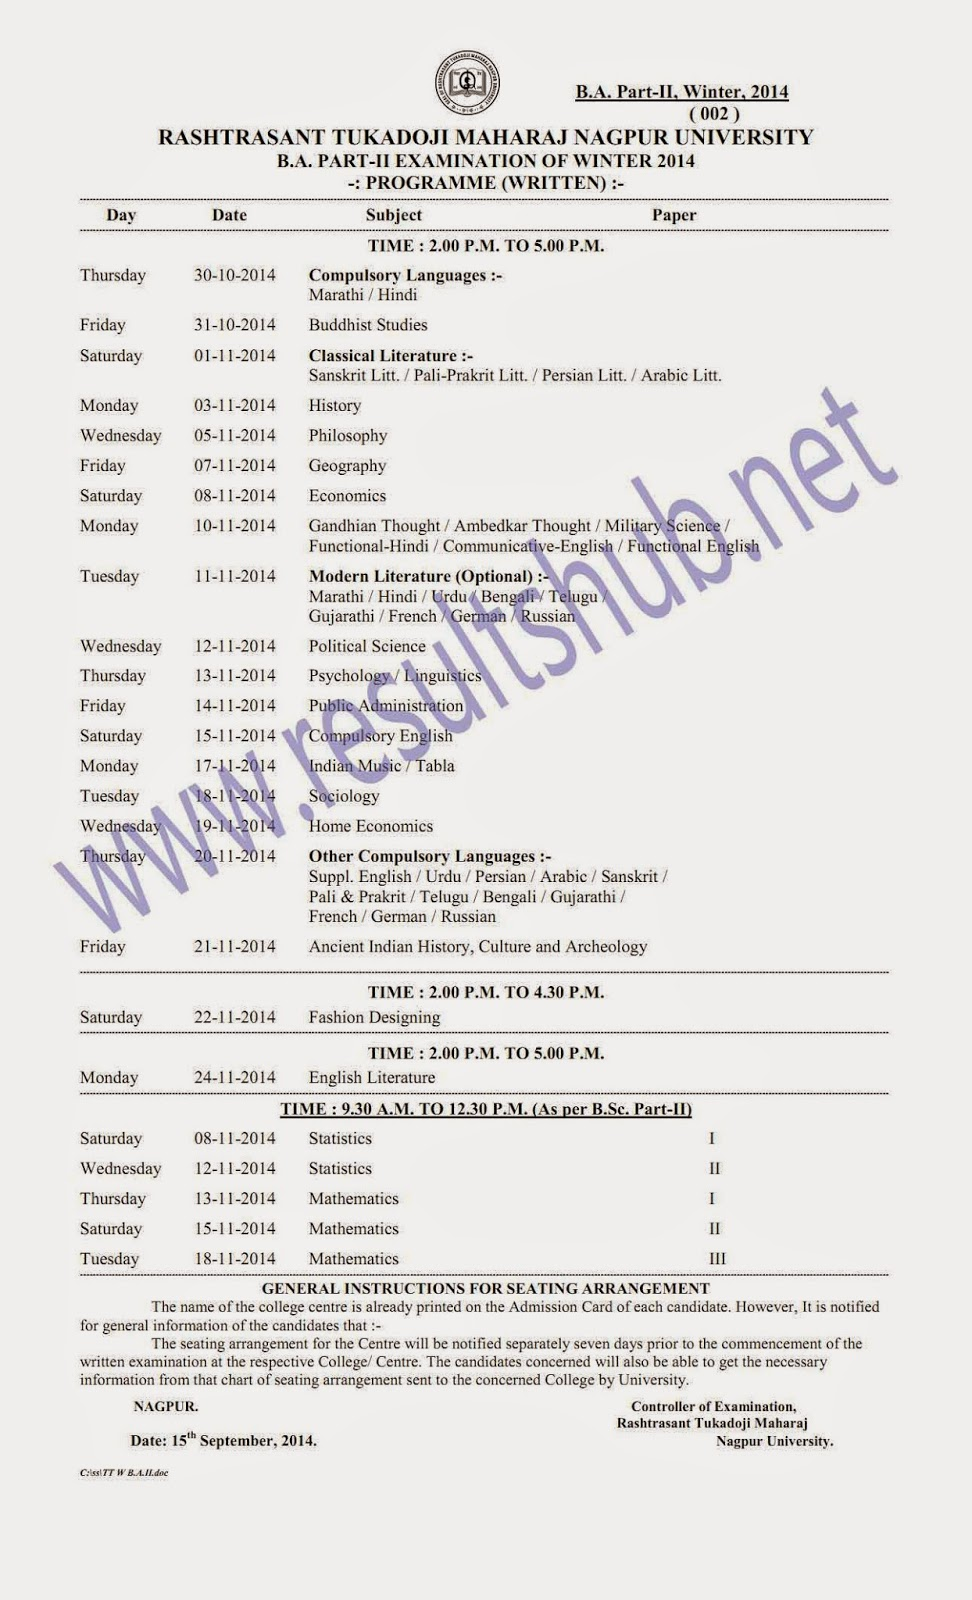 RTMNU-BA-Part-2-Winter-2014-Timetable